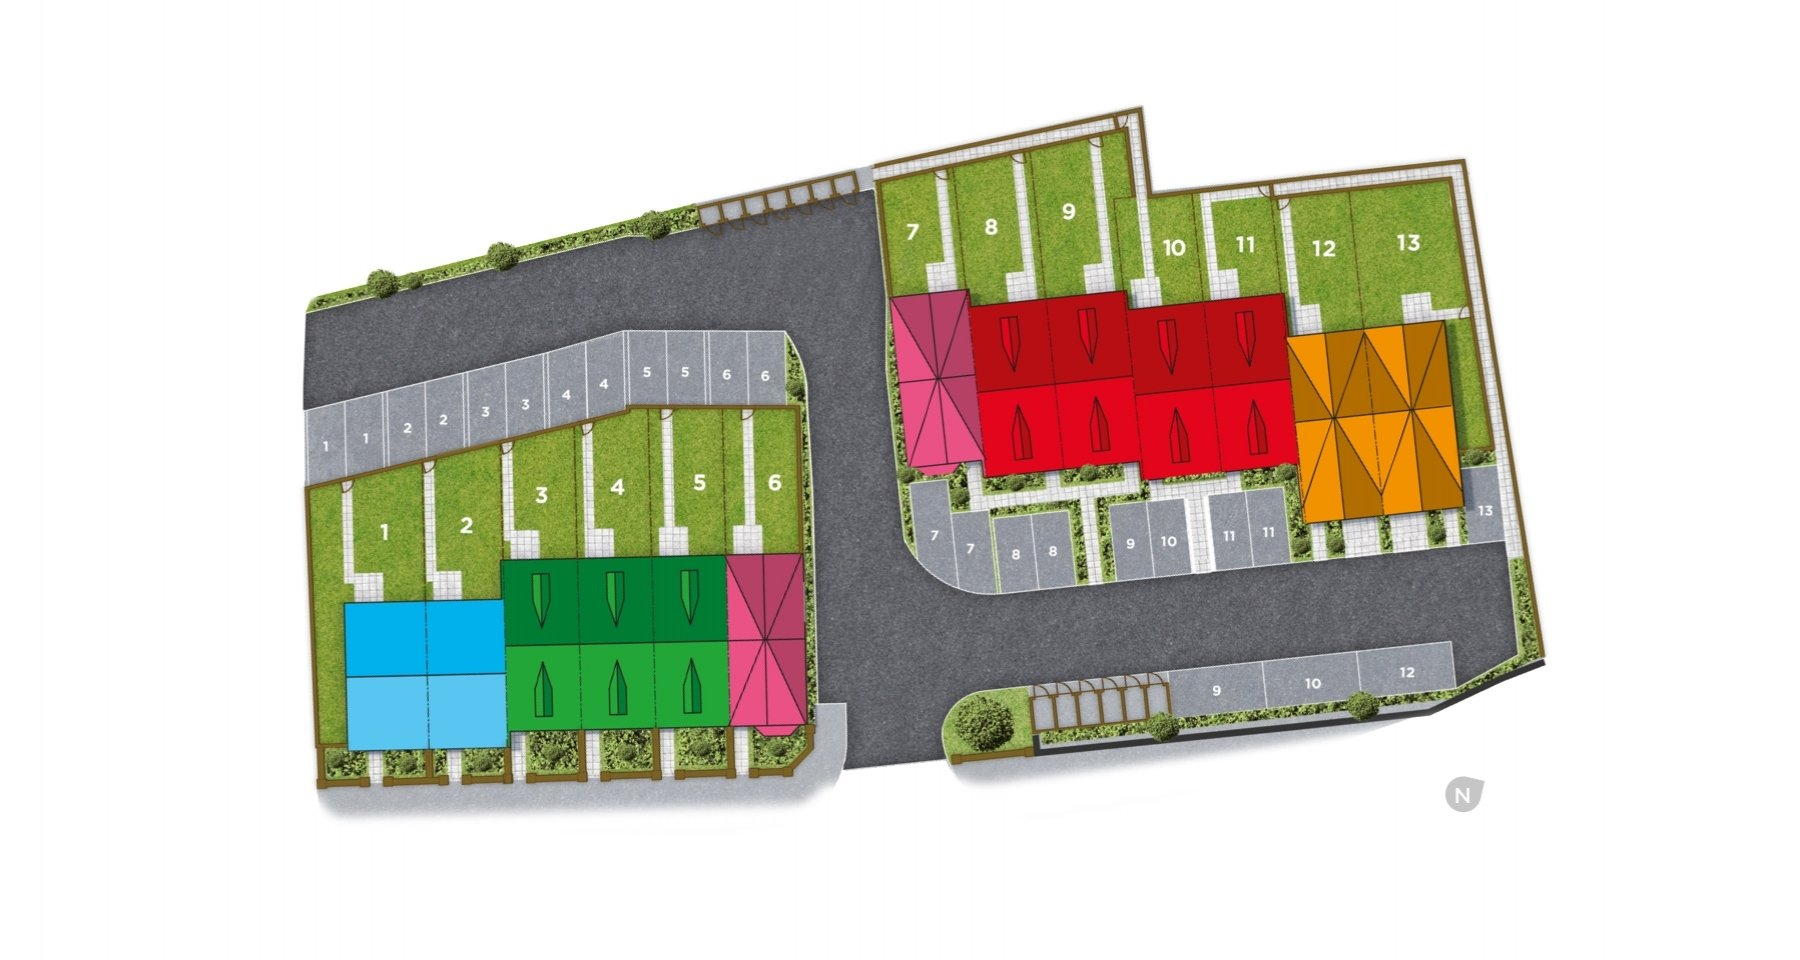 Handforth Court Site Plan